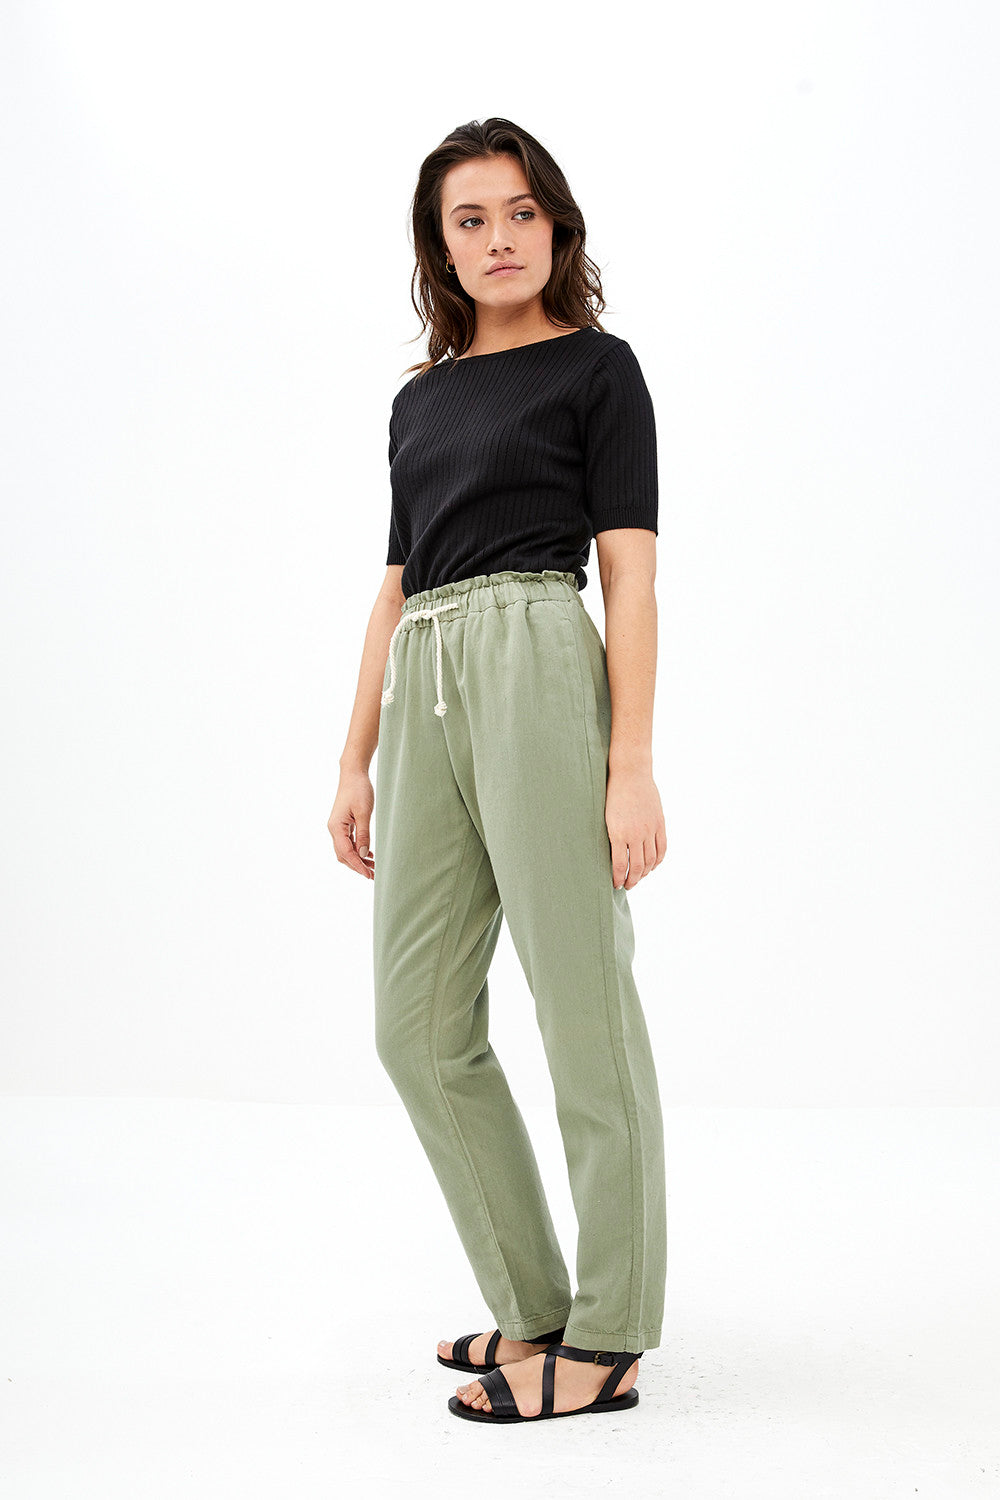 By-Bar - emily pique pant olive green